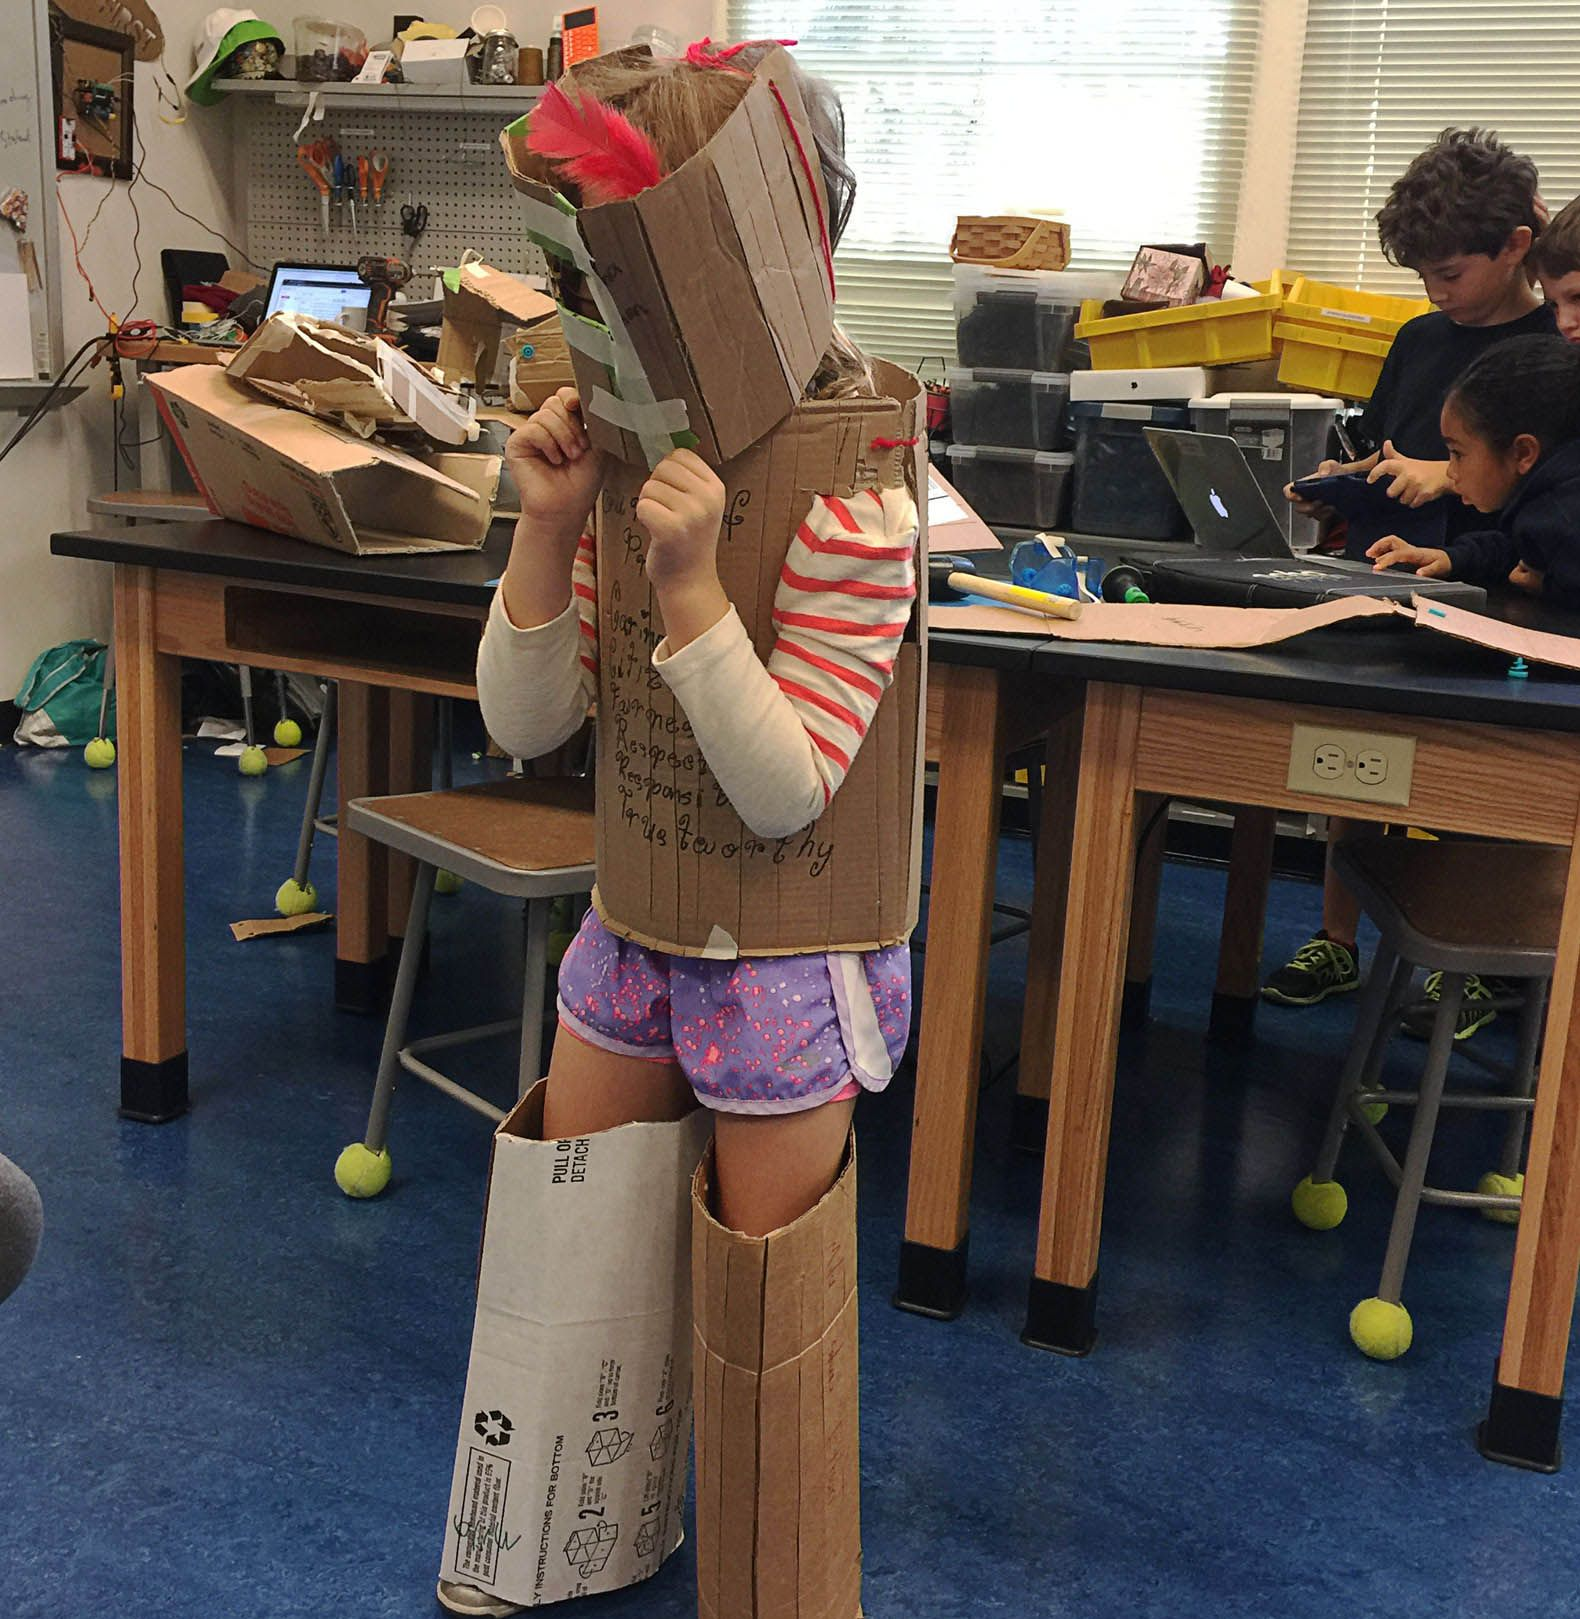 One of the writer's students tests out a suit of armor.